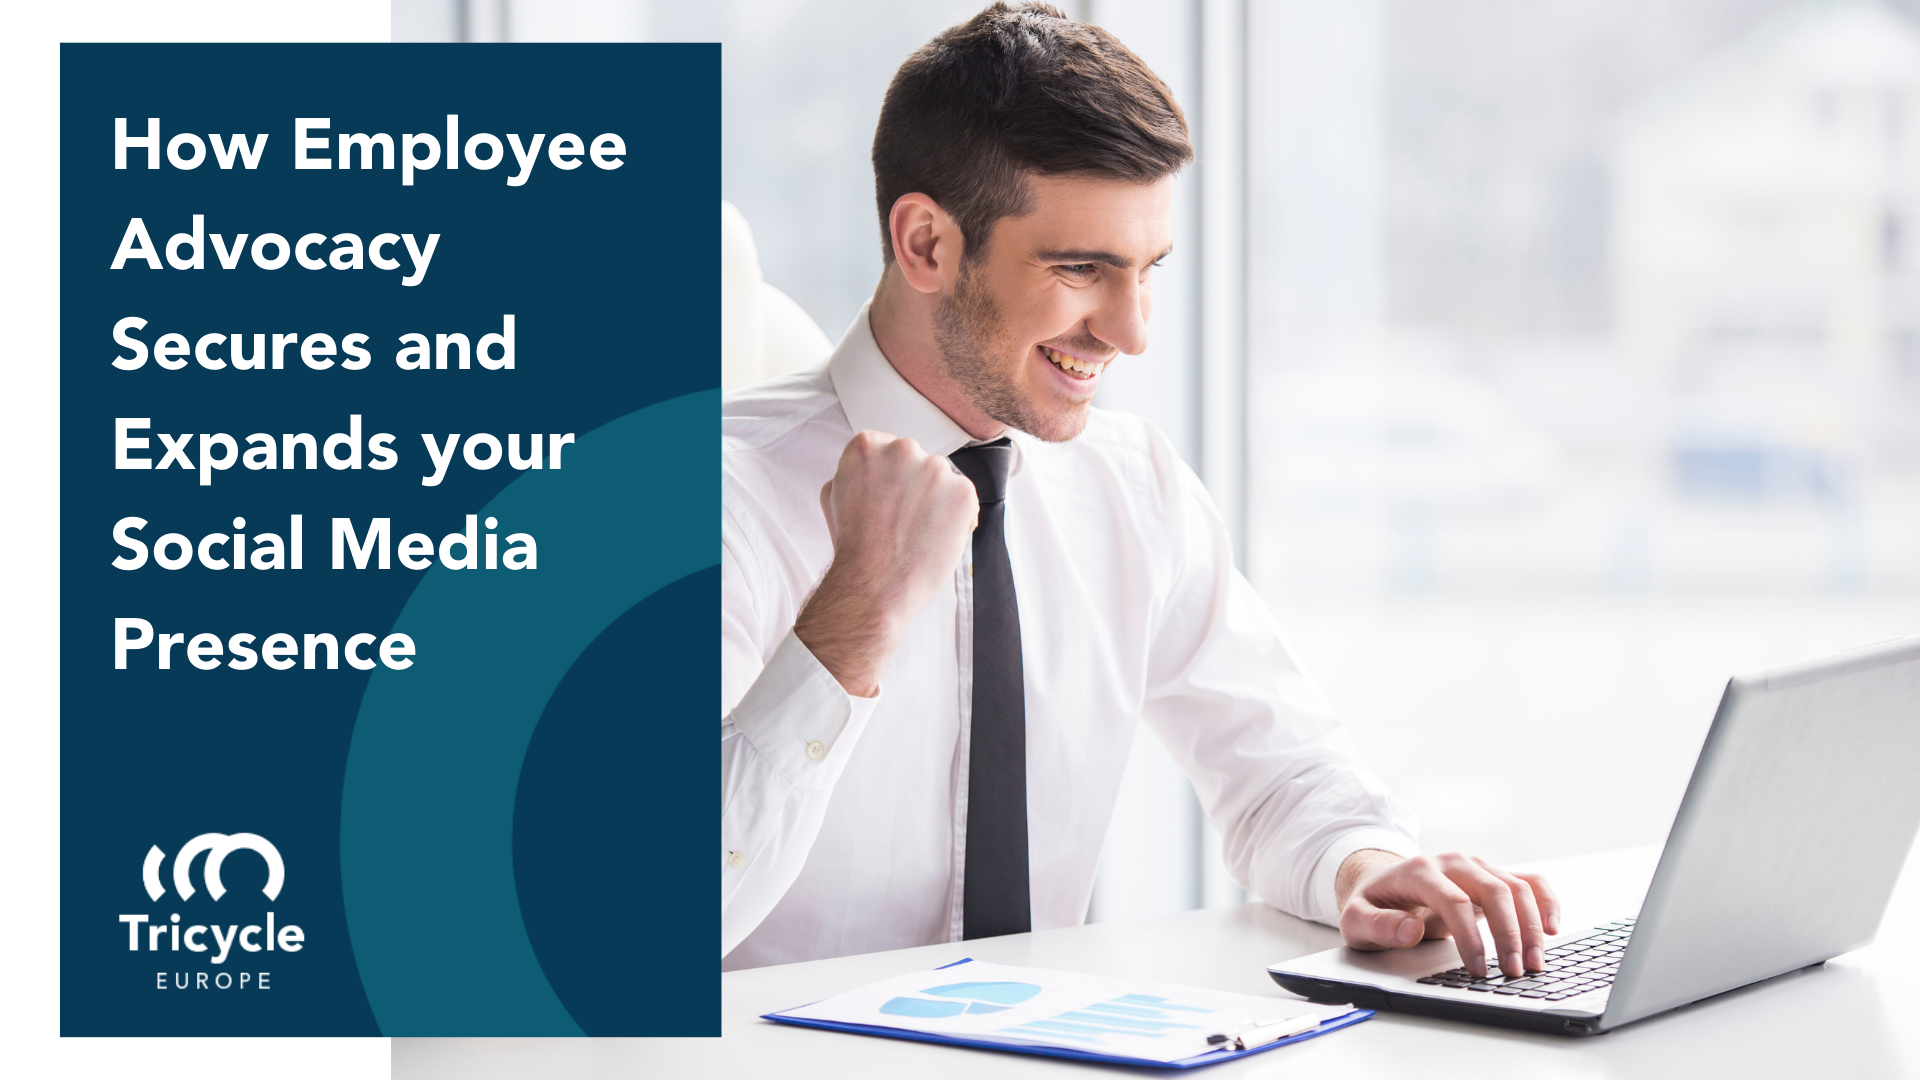 How Employee Advocacy Secures and Expands your Social Media Presence